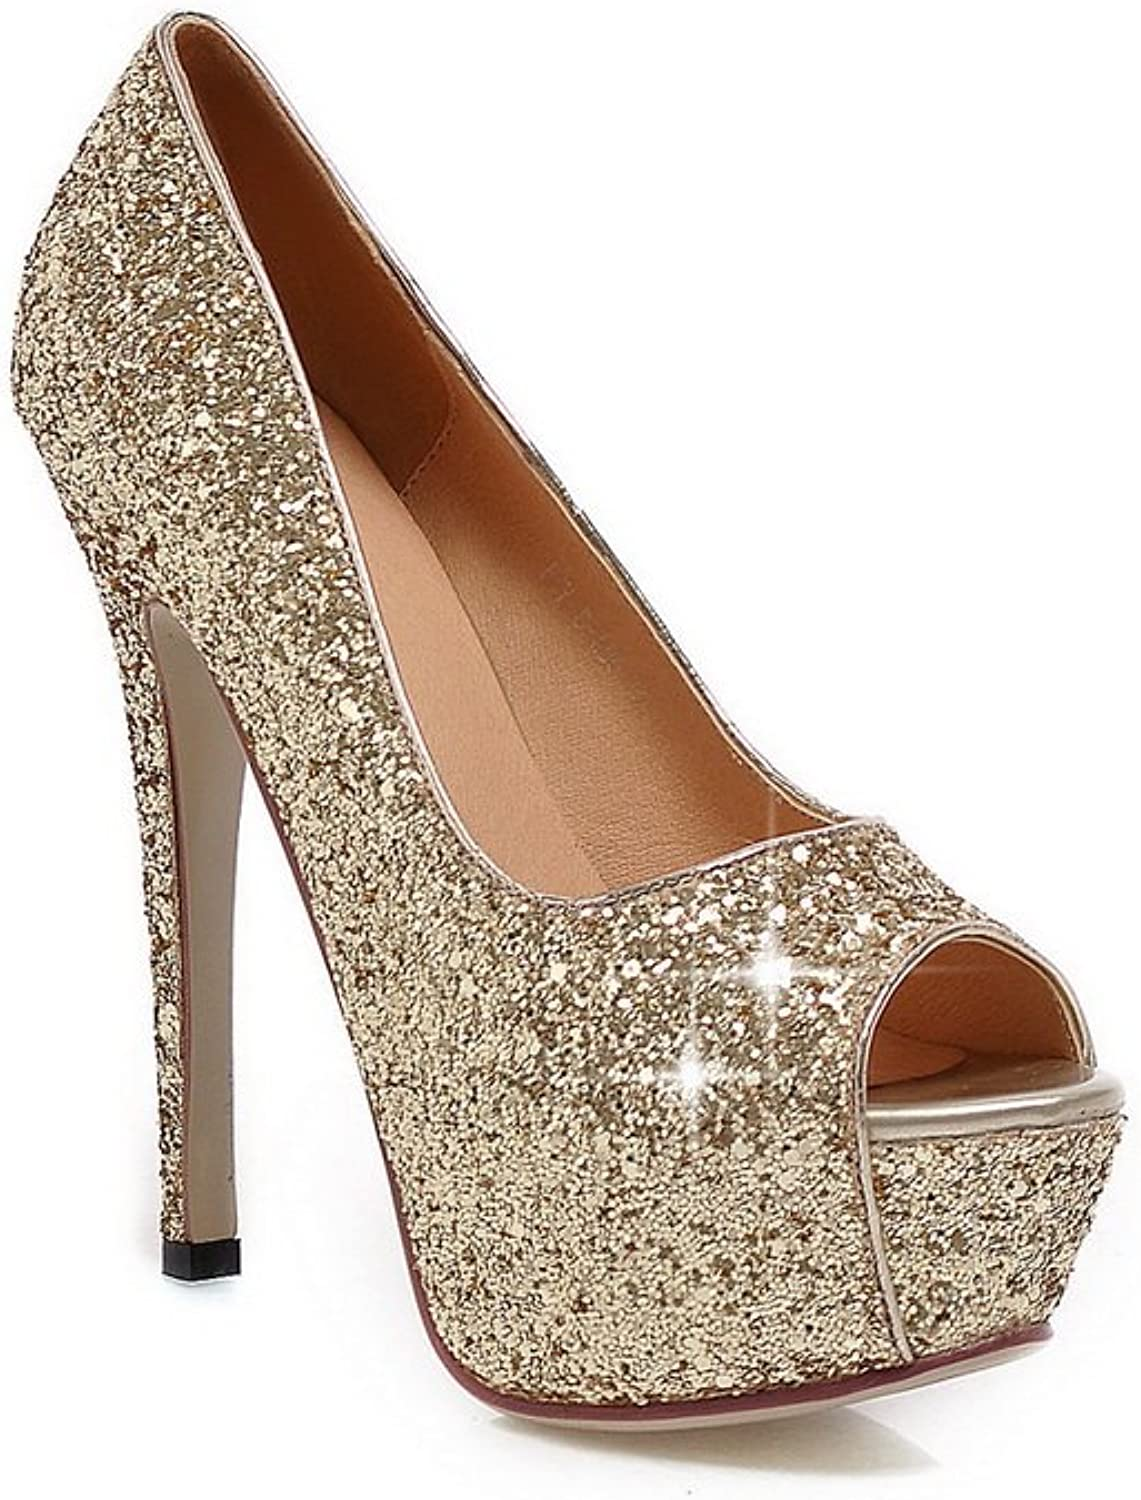 AdeeSu Womens Sequins Dress Soft Material Pumps shoes